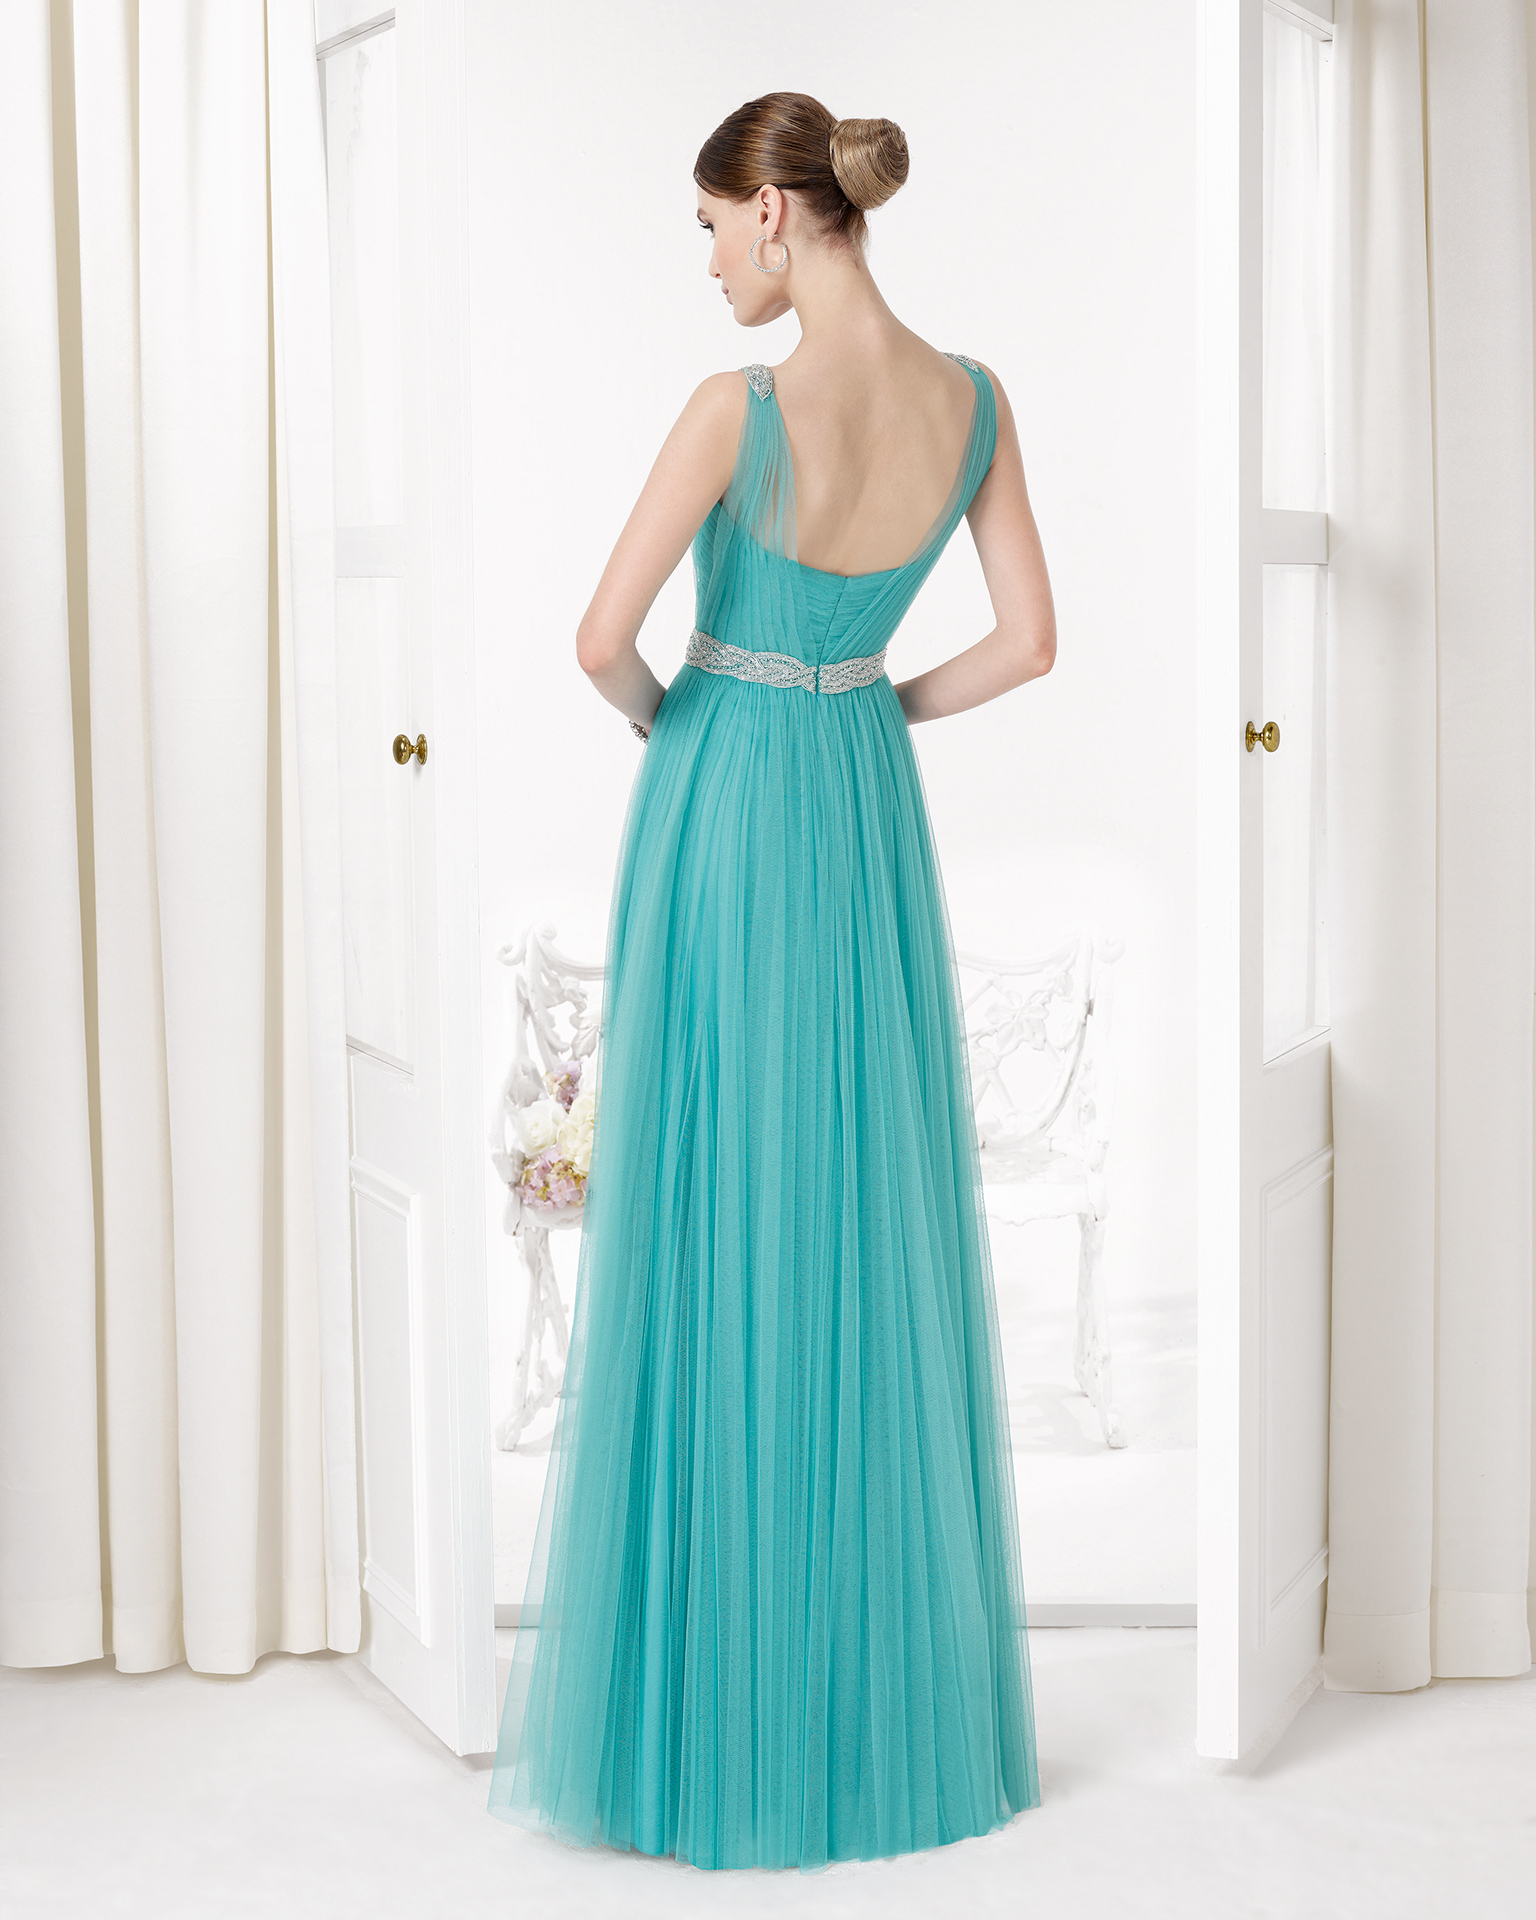 9U2A2 - Beaded silky tulle cocktail gown.